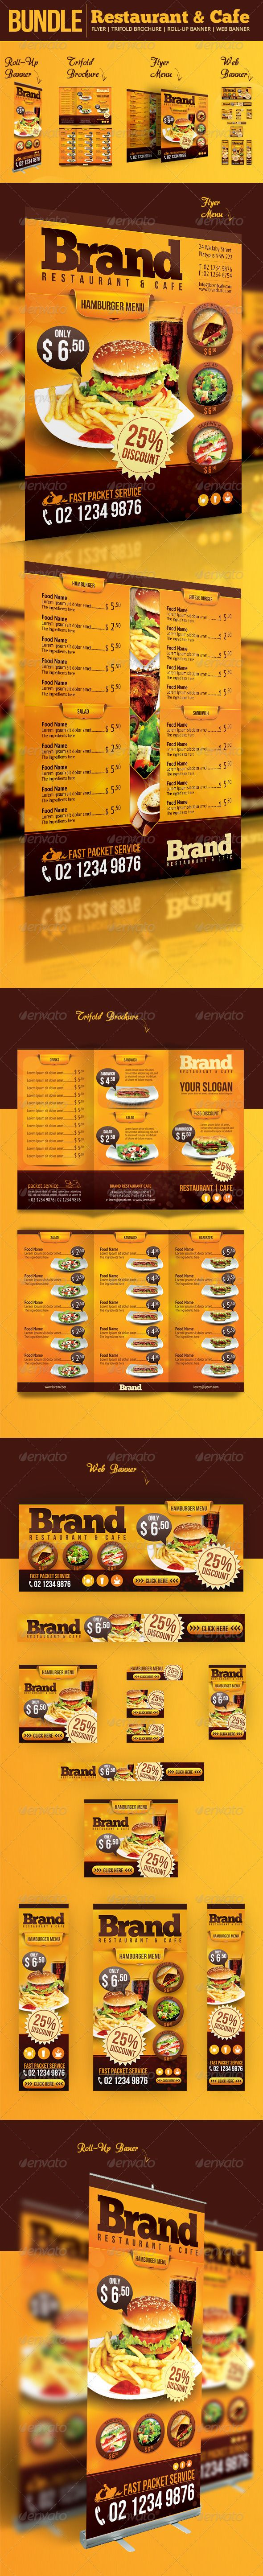 restaurant cafe bundle restaurants design and food webs